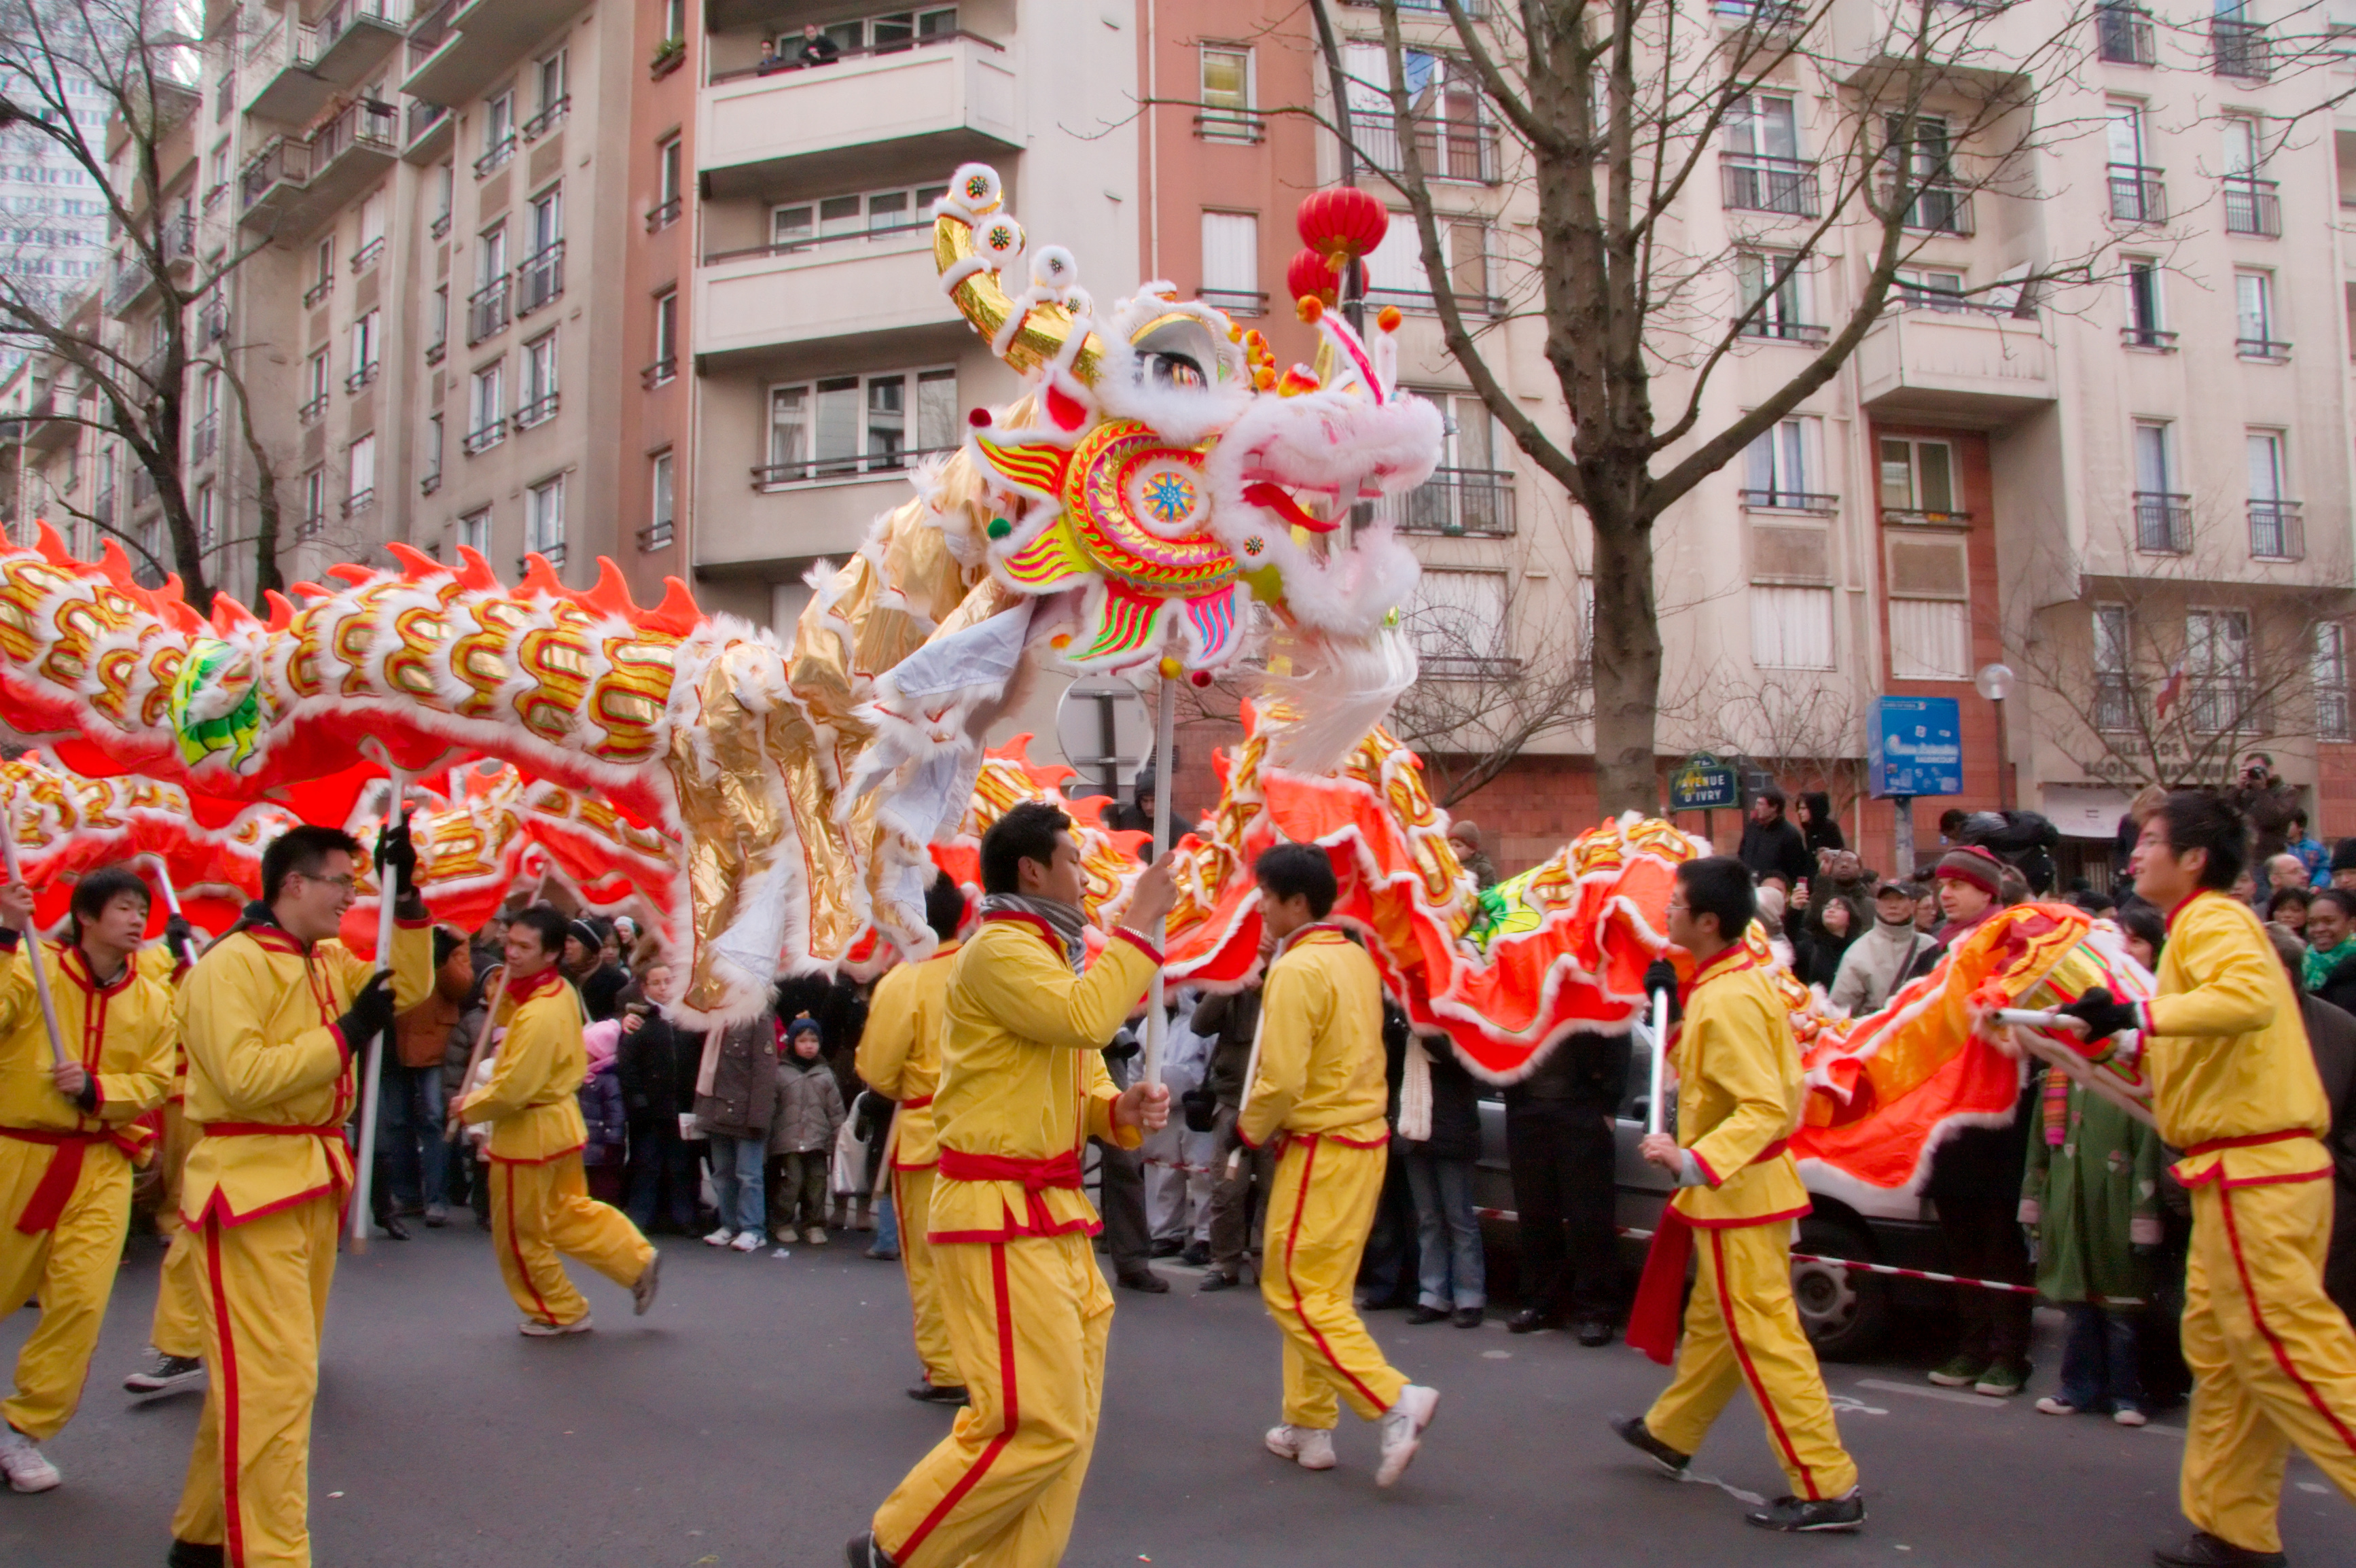 file nouvel an chinois paris 20090201 wikimedia commons. Black Bedroom Furniture Sets. Home Design Ideas